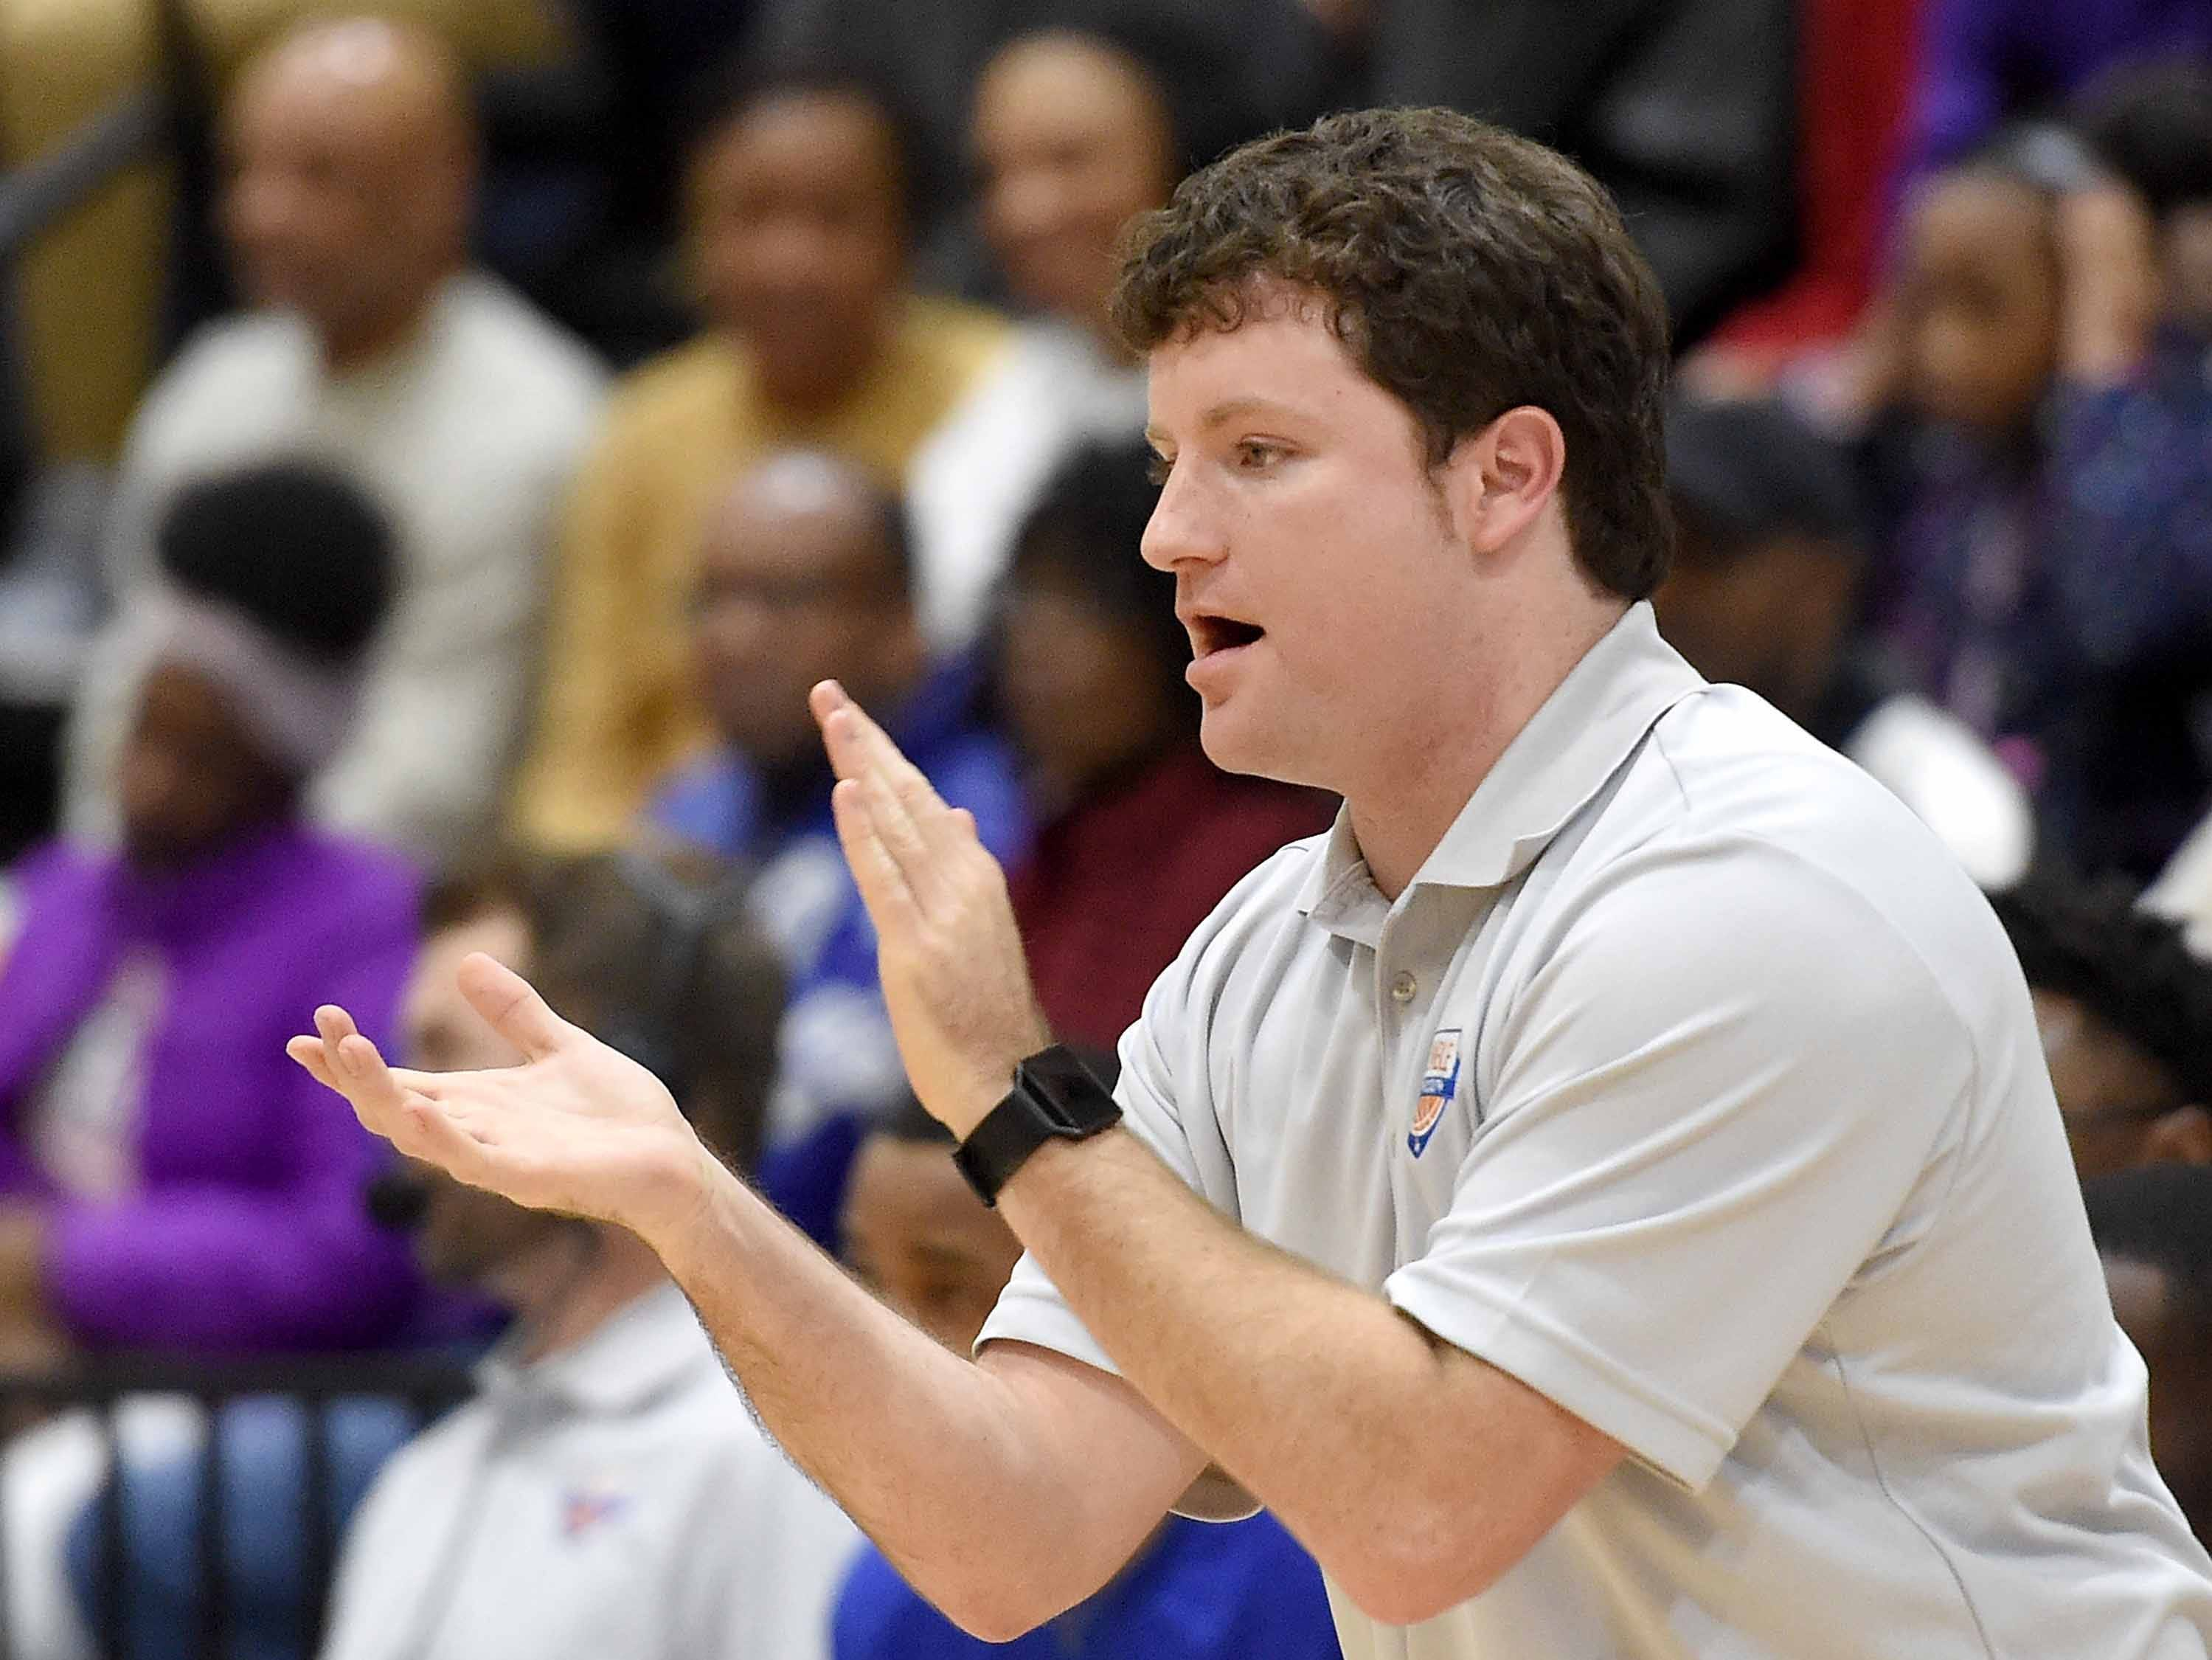 Raymond head coach Tony Tadlock encourages his Rangers on Monday, January 21, 2019, at the Rumble in the South high school basketball tournament at St. Andrew's Episcopal School in Ridgeland, Miss.